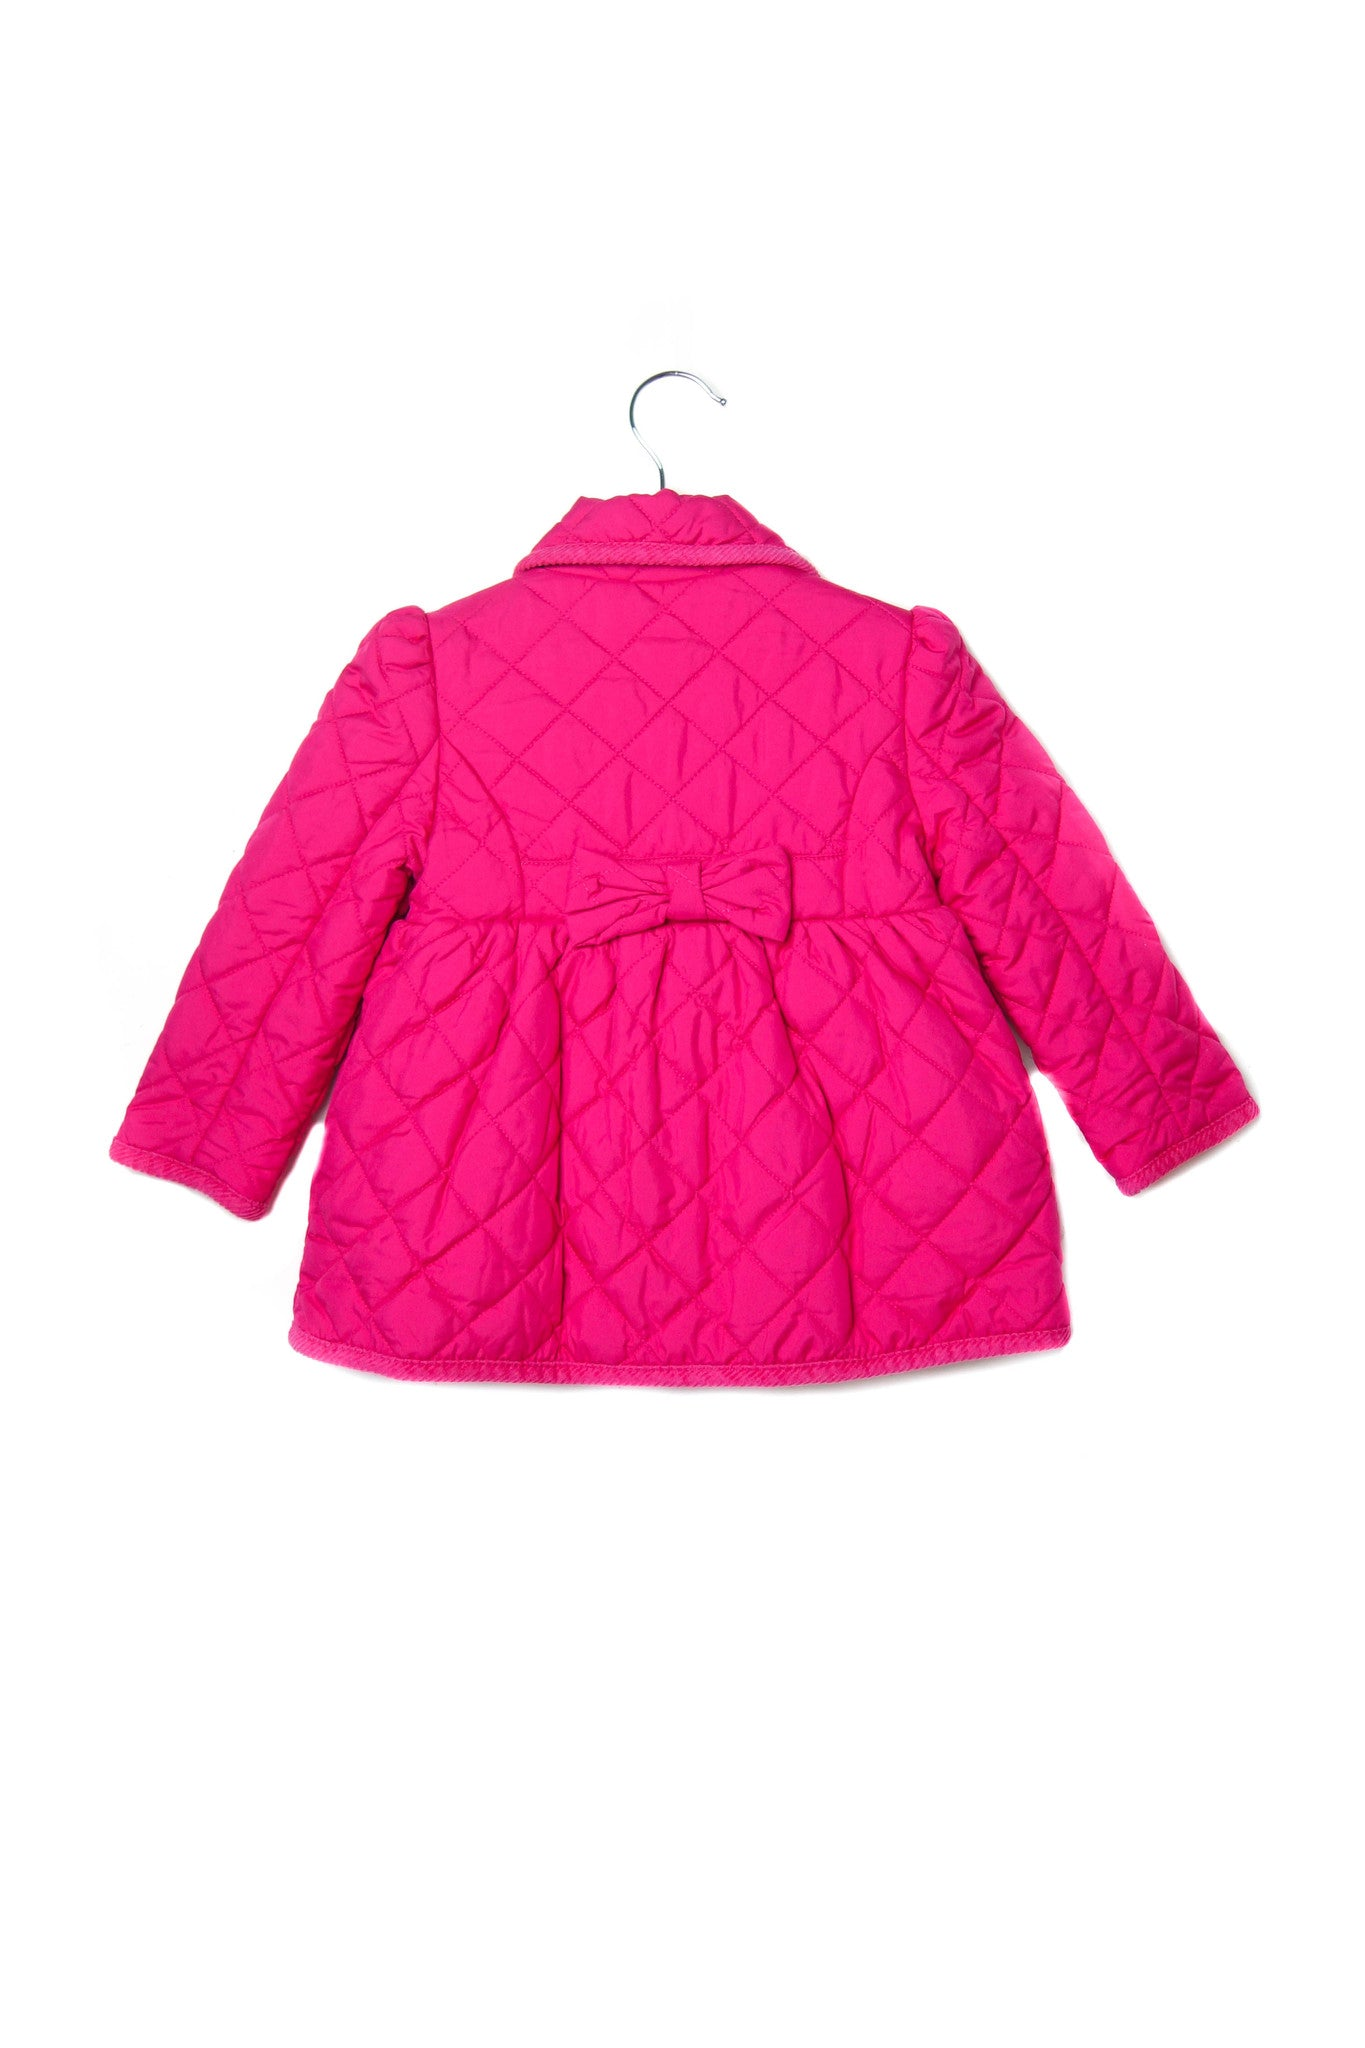 10001439BG~Jacket 18M, Ralph Lauren at Retykle - Online Baby & Kids Clothing Up to 90% Off